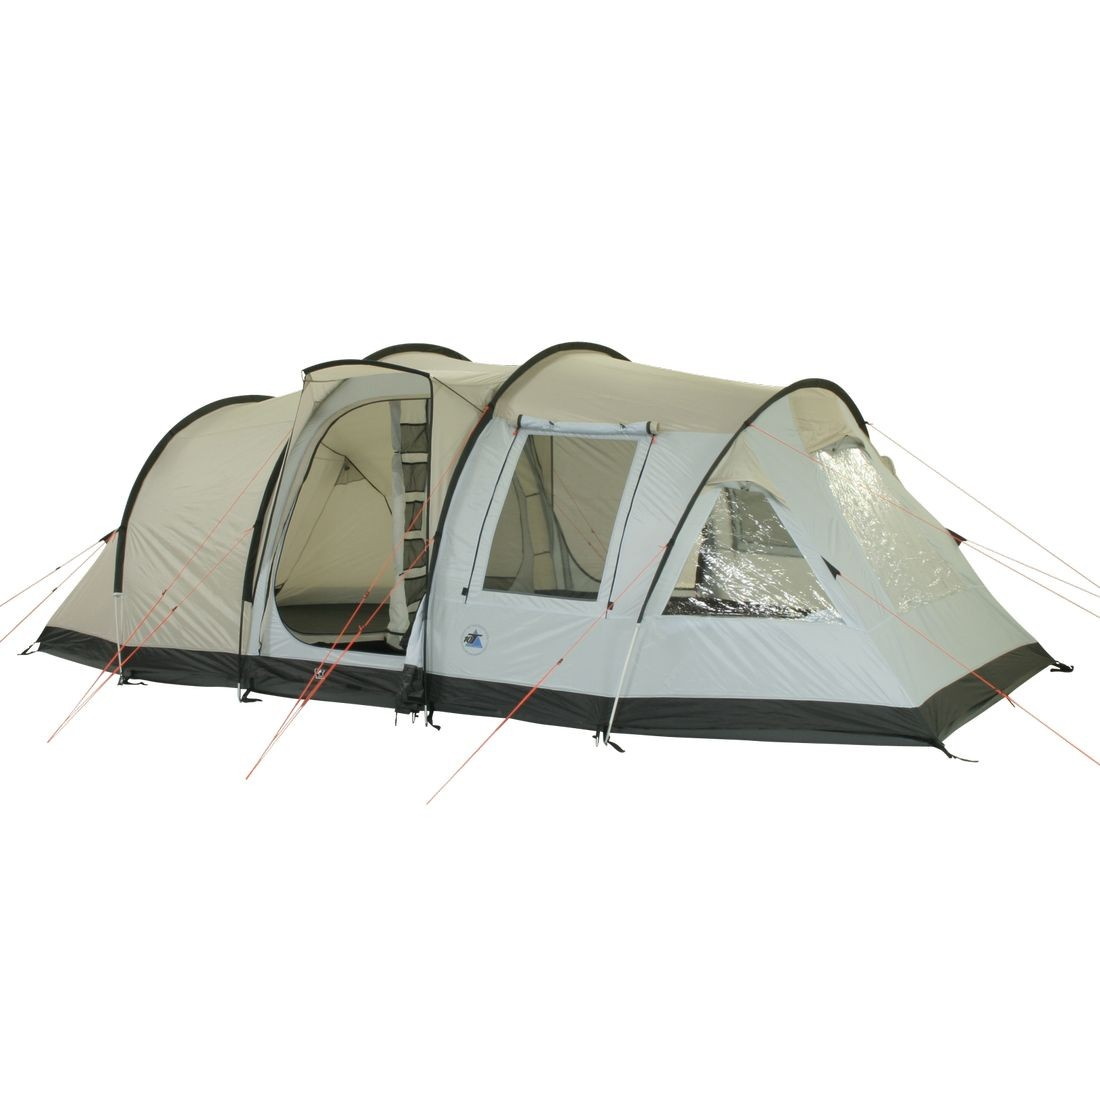 10T Outdoor Equipment - KENTON 4 - Image 1  sc 1 st  C&ing-Outdoor.eu & Buy 10T Kenton - 4-person apsis tunnel tent with full ground sheet ...